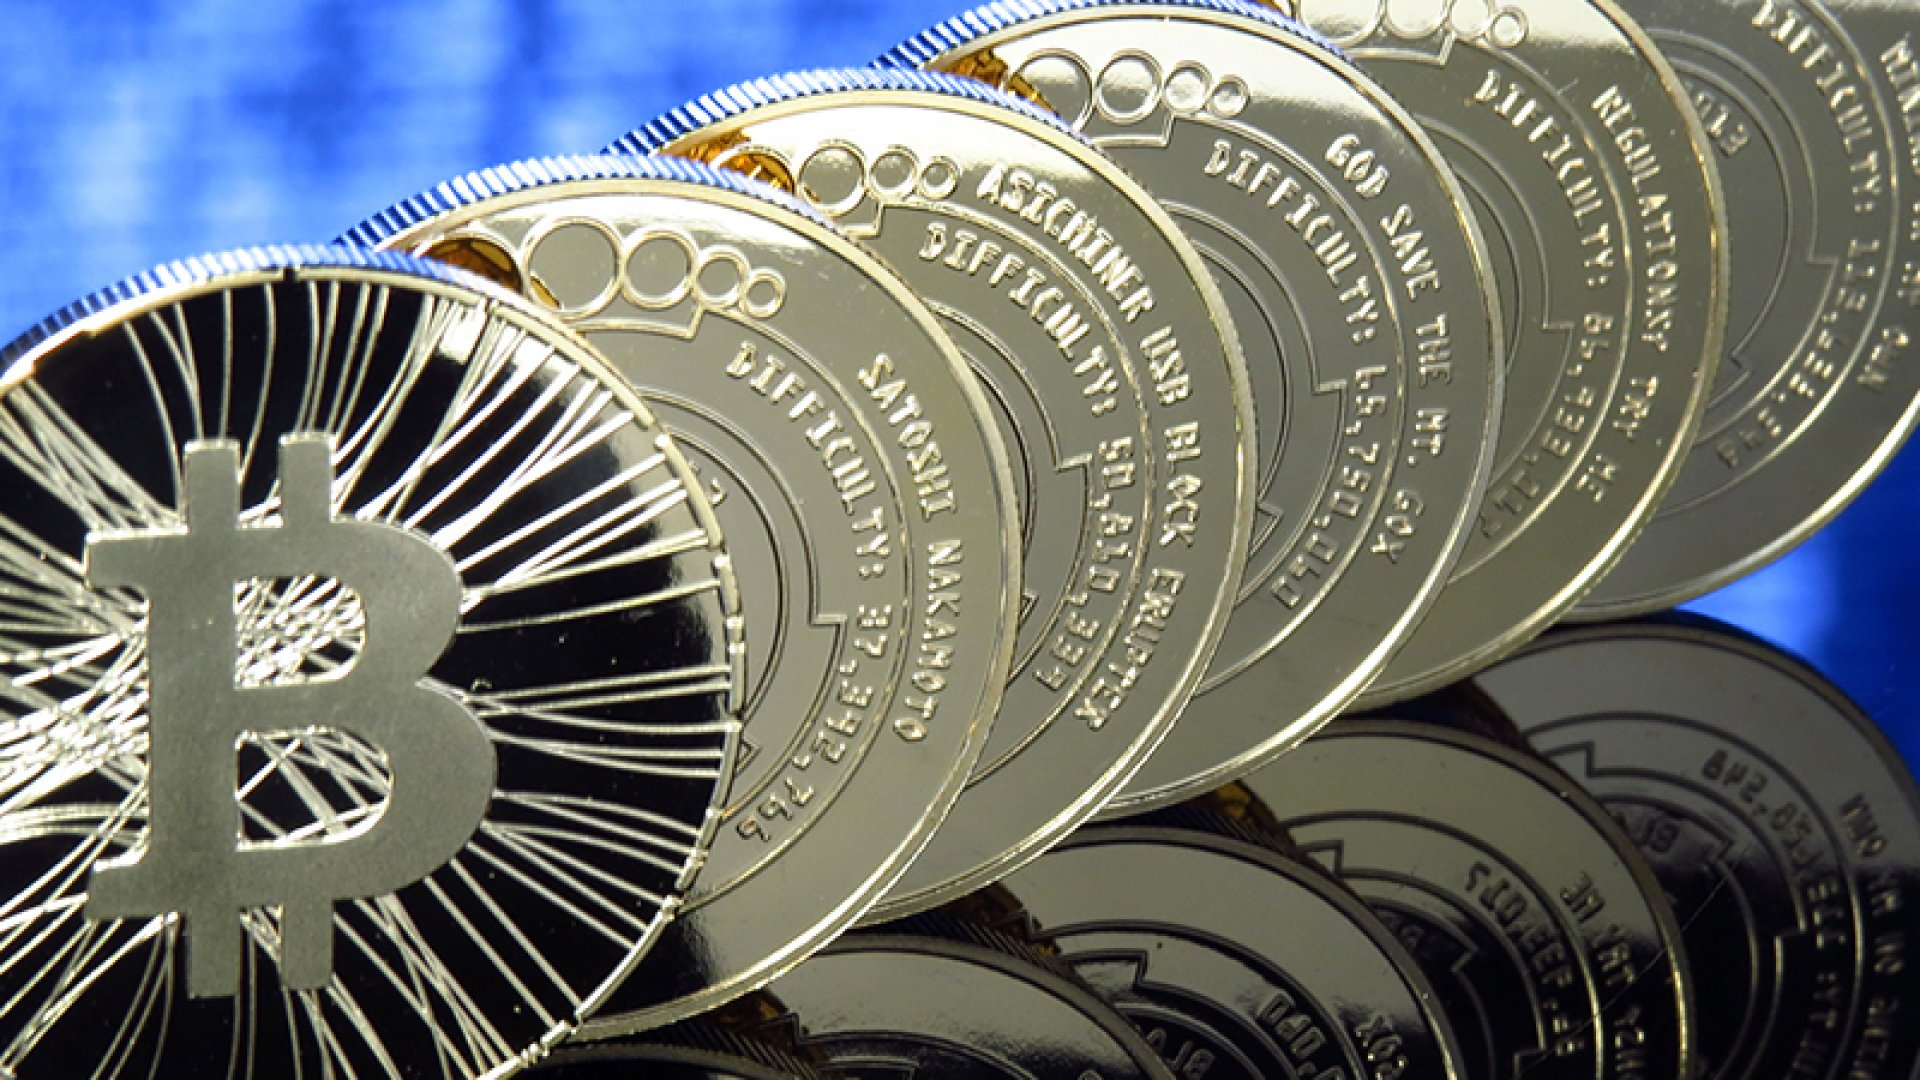 3 Facinating Facts About Bitcoin You Need To Know